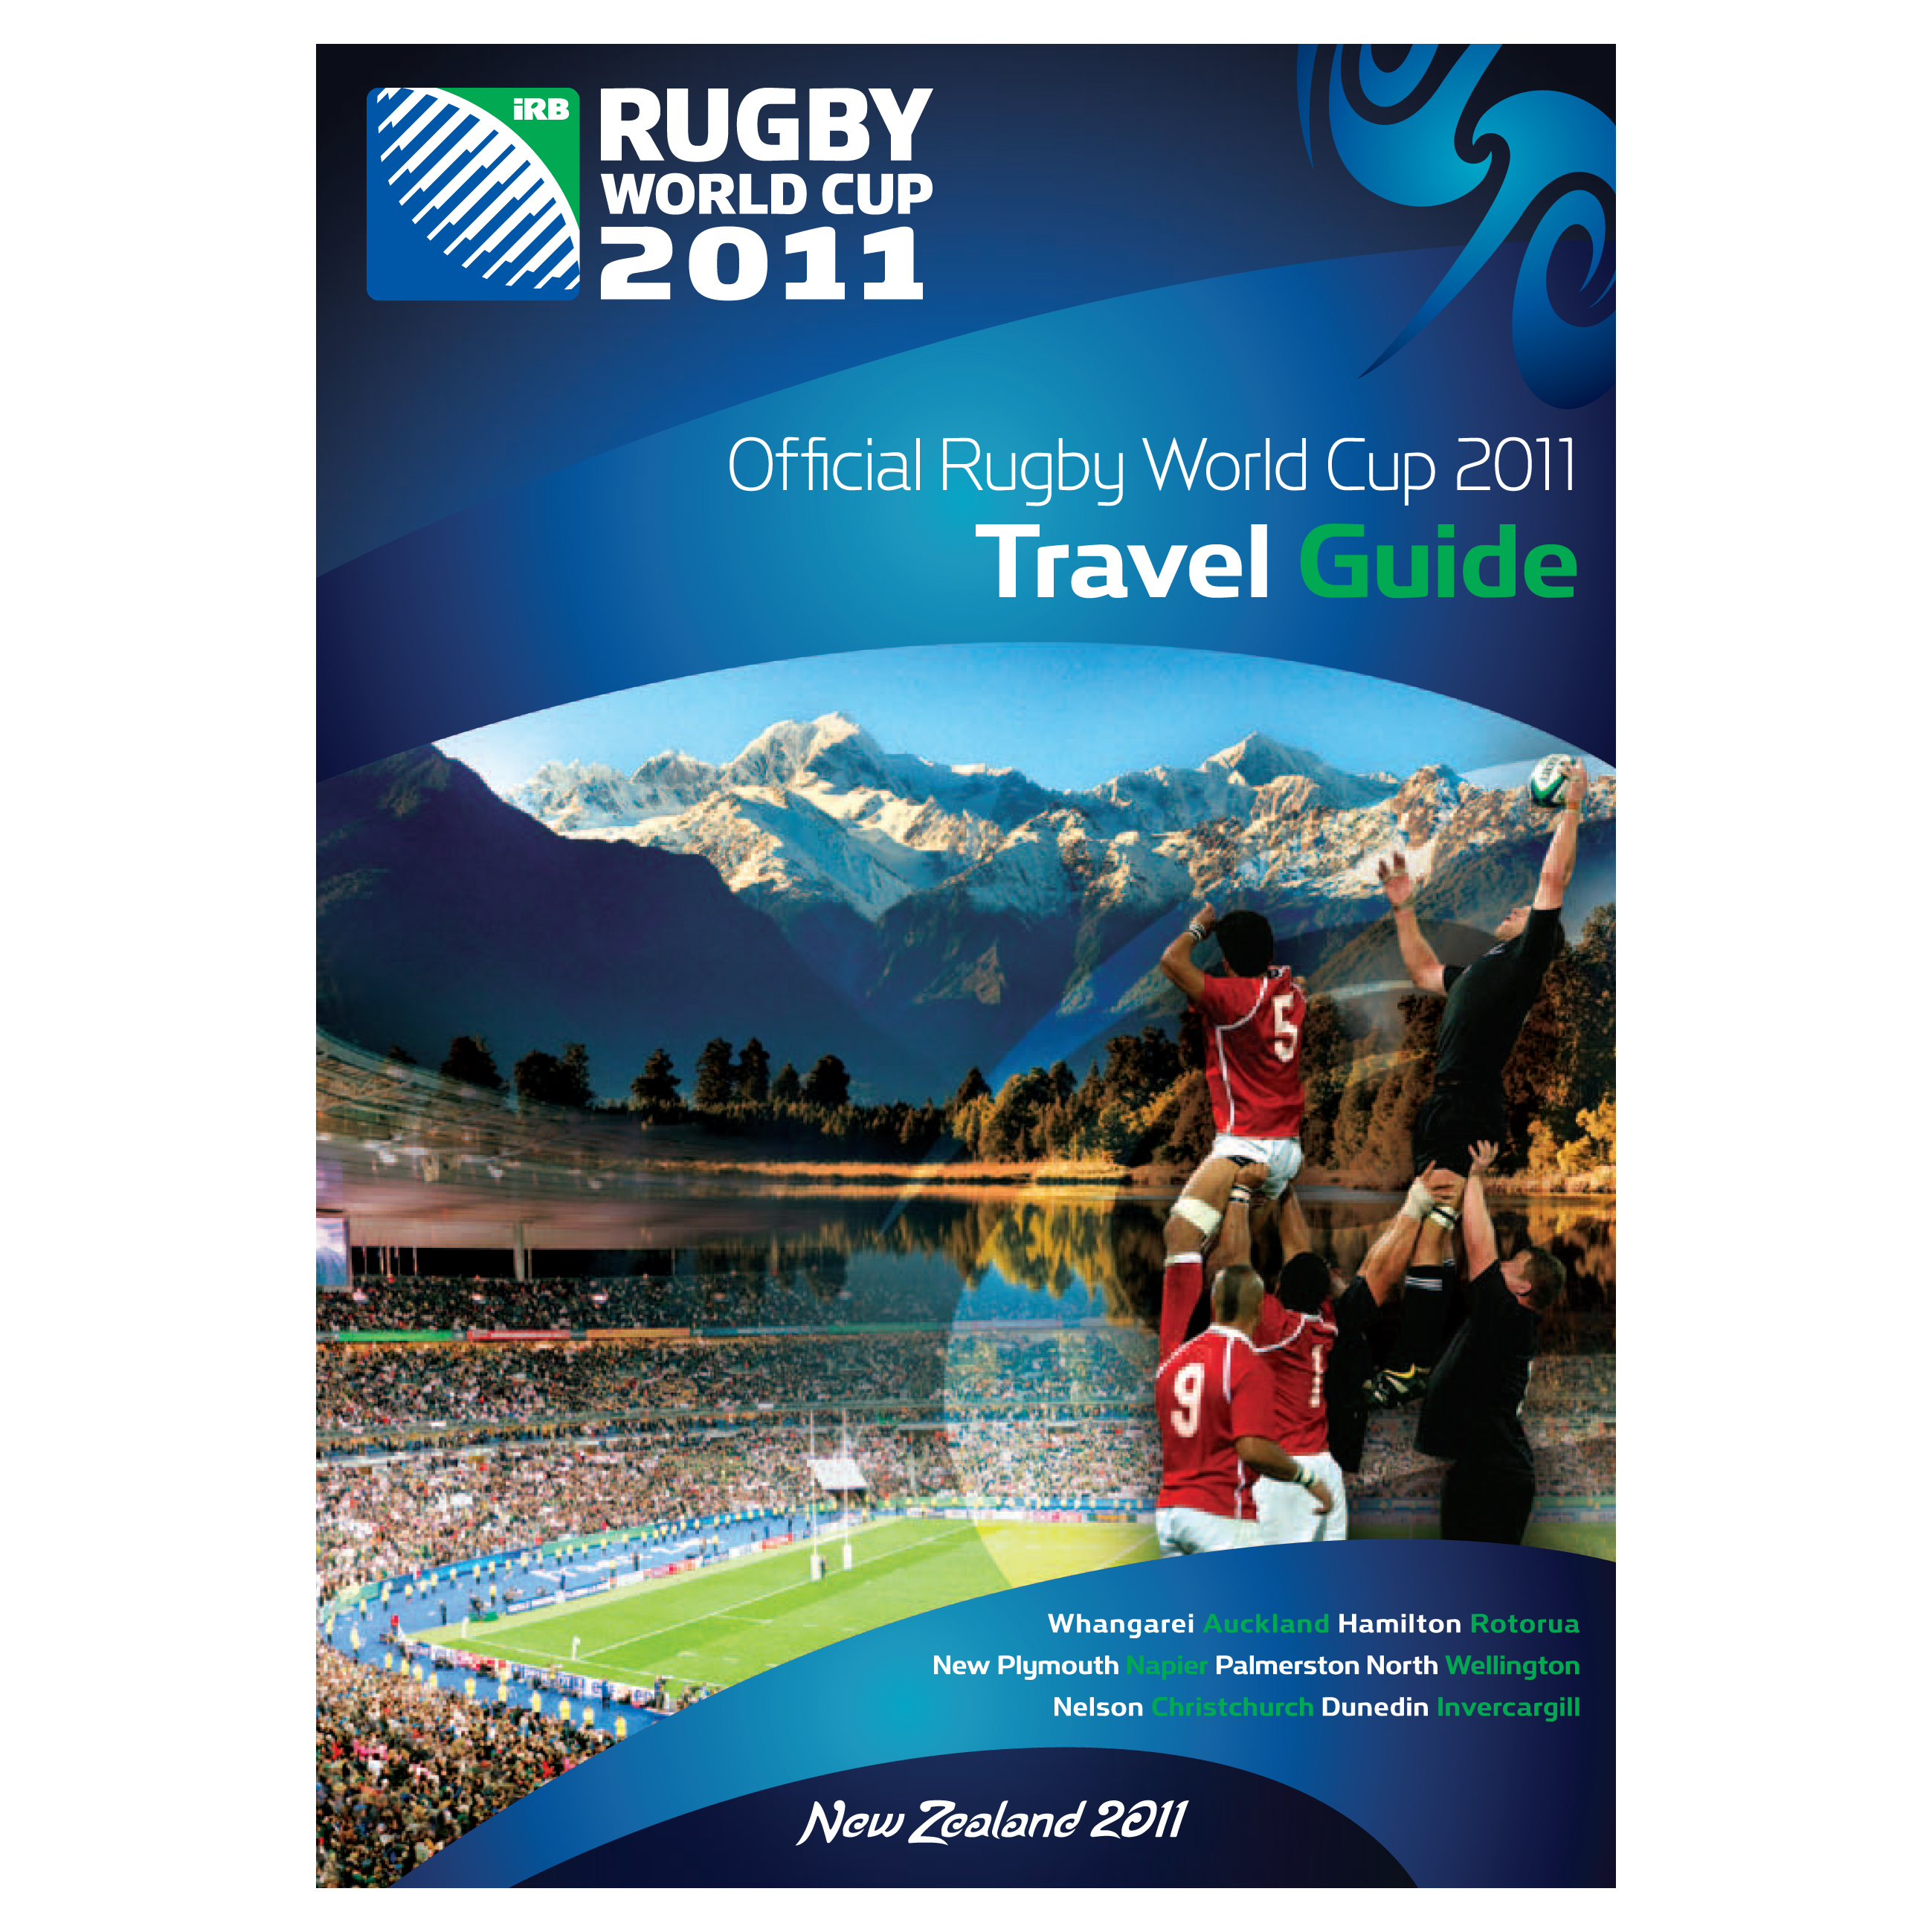 Official Rugby World Cup 2011 Travel Guide